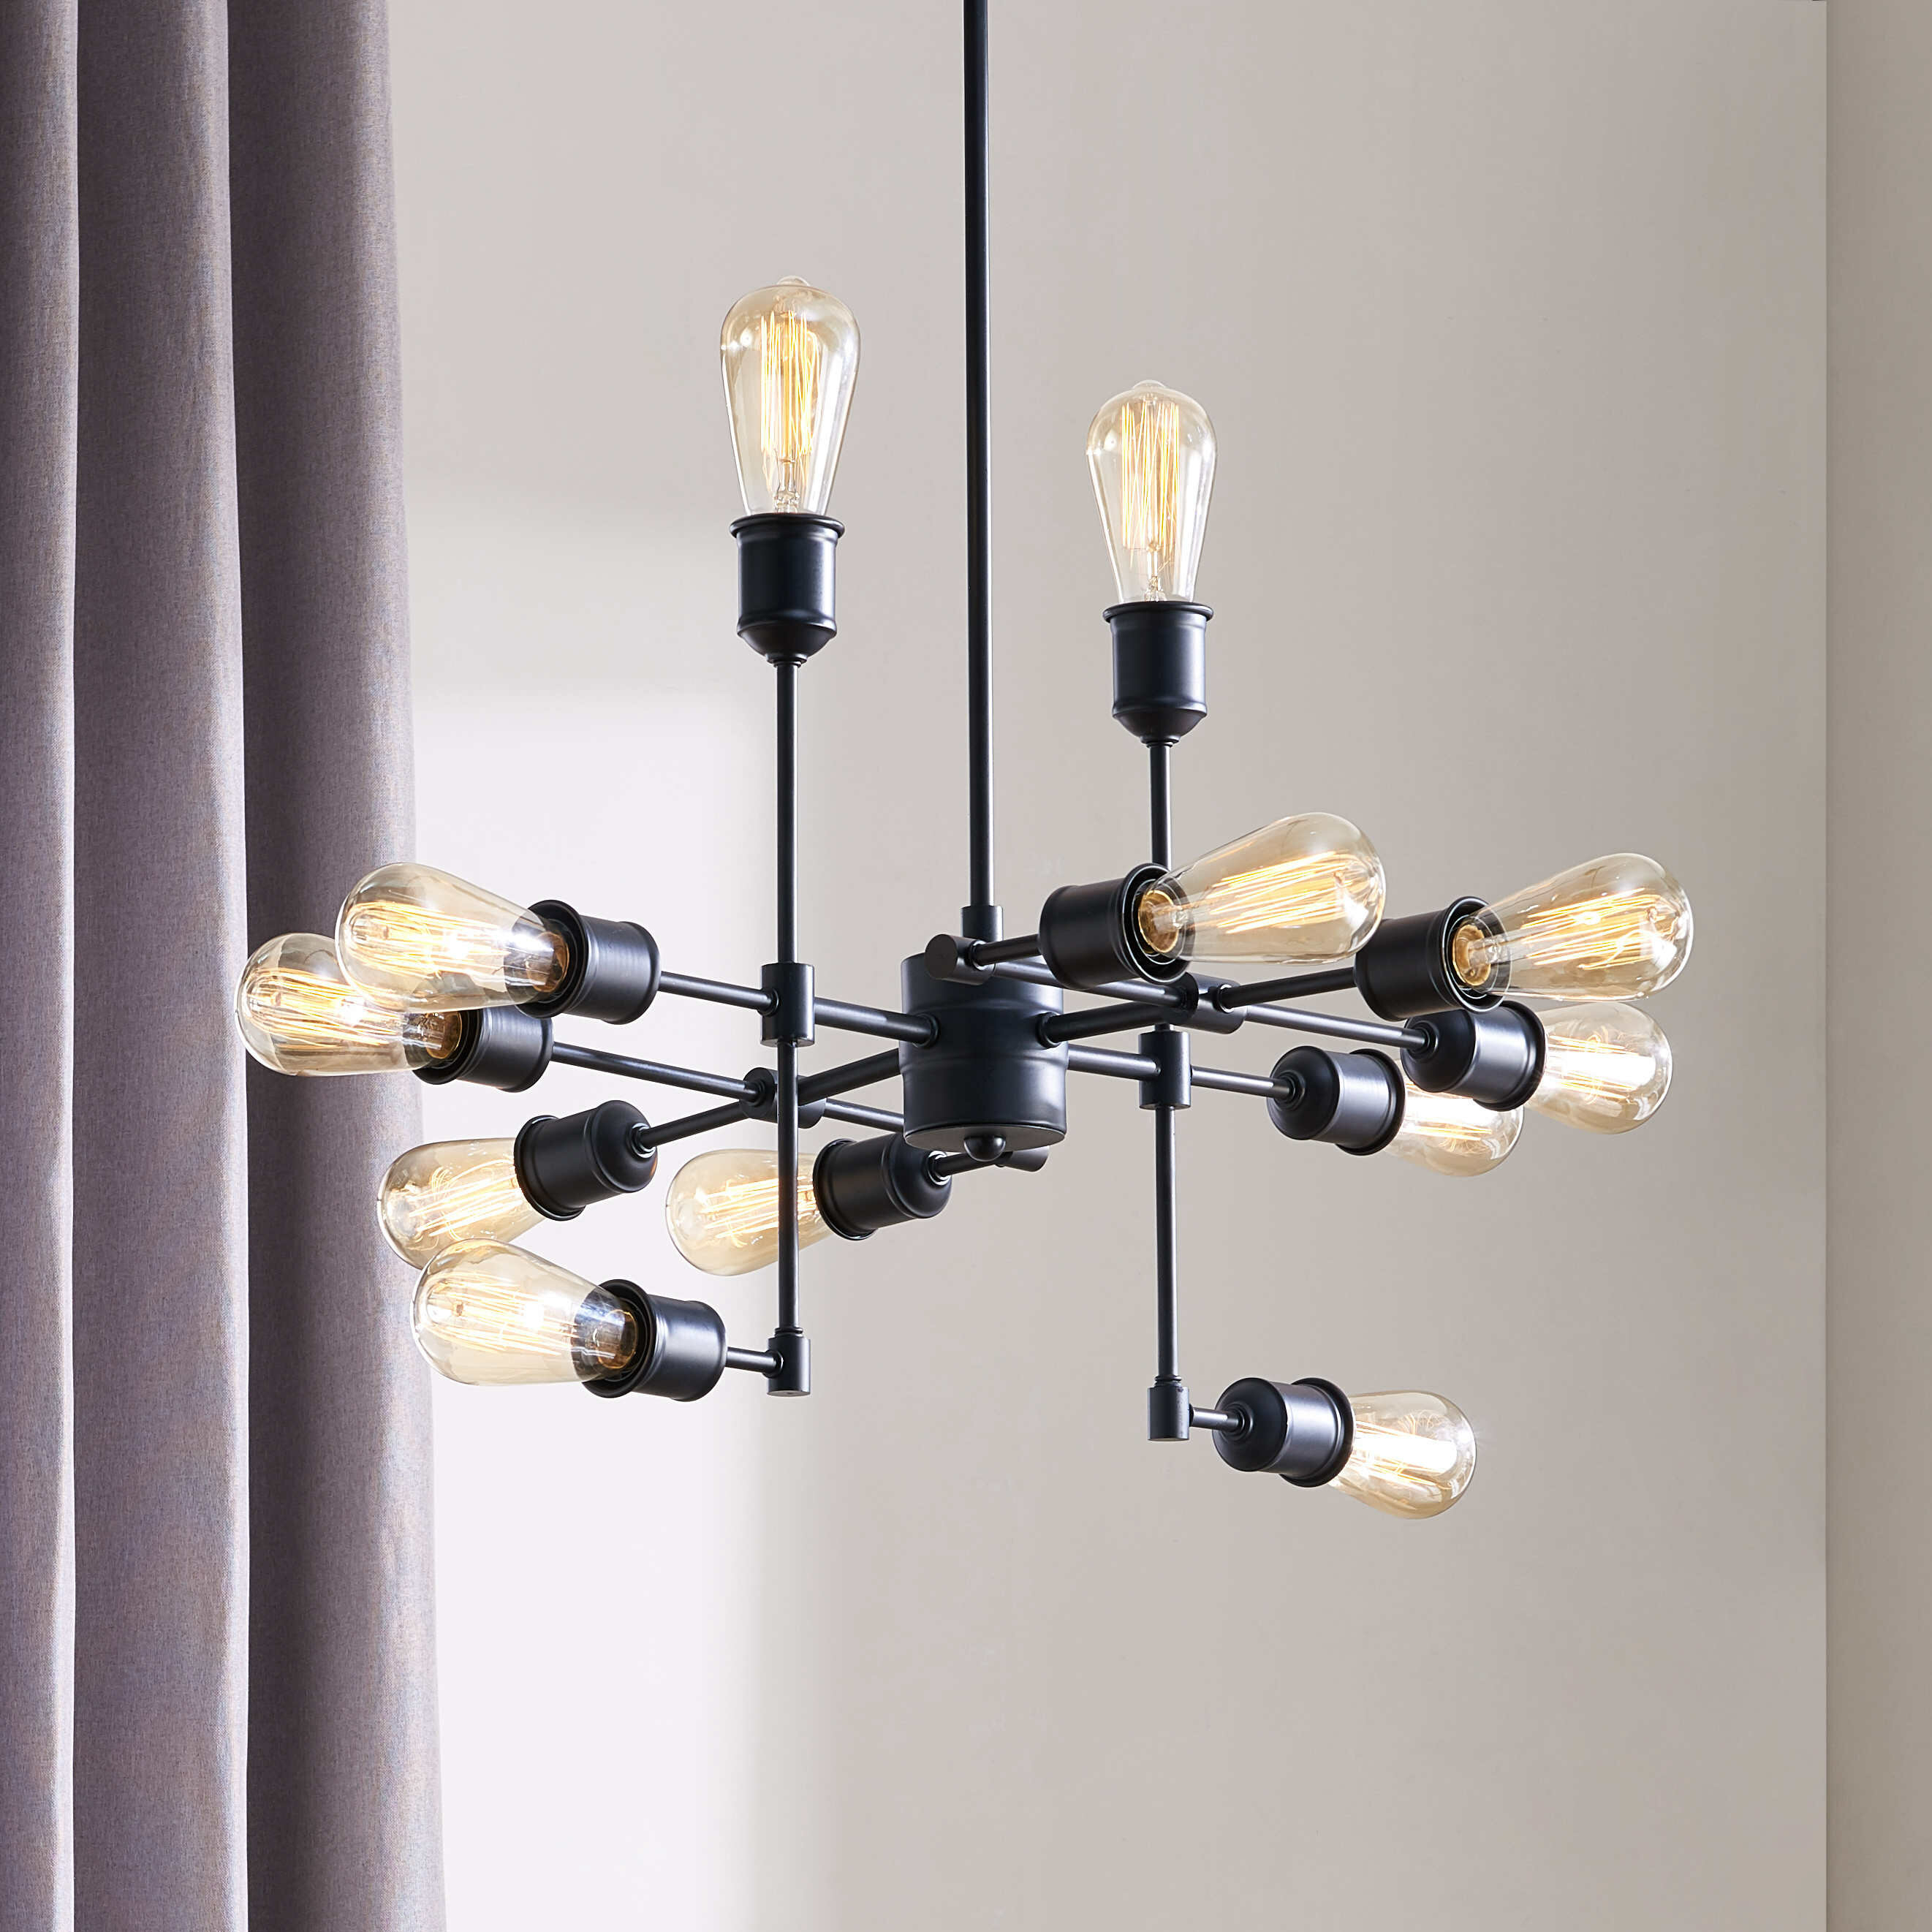 Naranjo 12 Light Sputnik Chandelier Intended For Vroman 12 Light Sputnik Chandeliers (View 15 of 30)